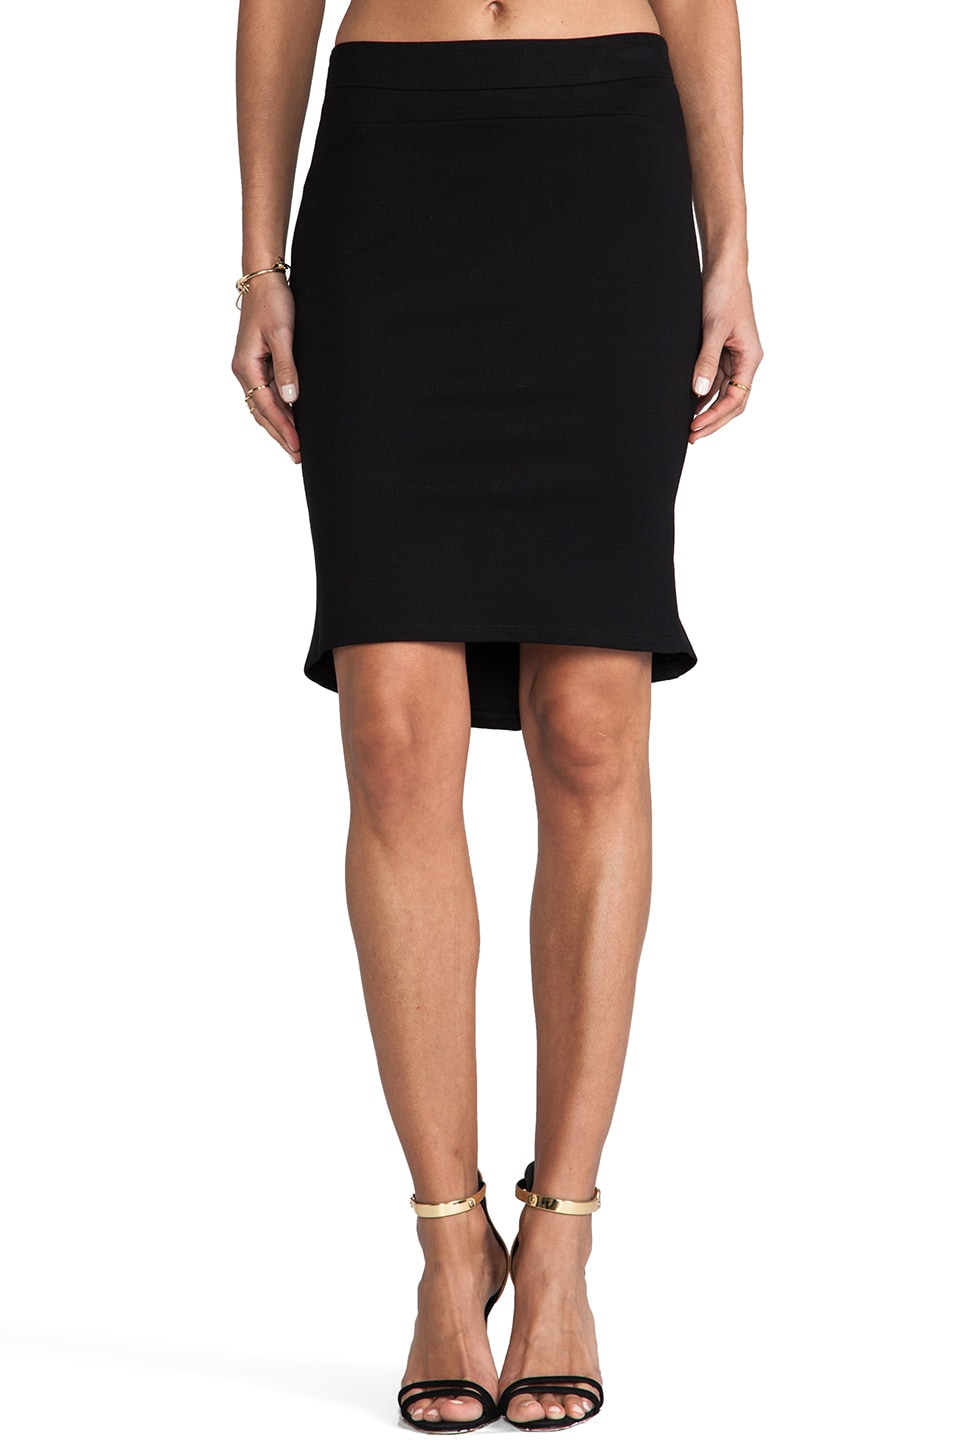 Graham & Spencer Solid Ponti Skirt in Black